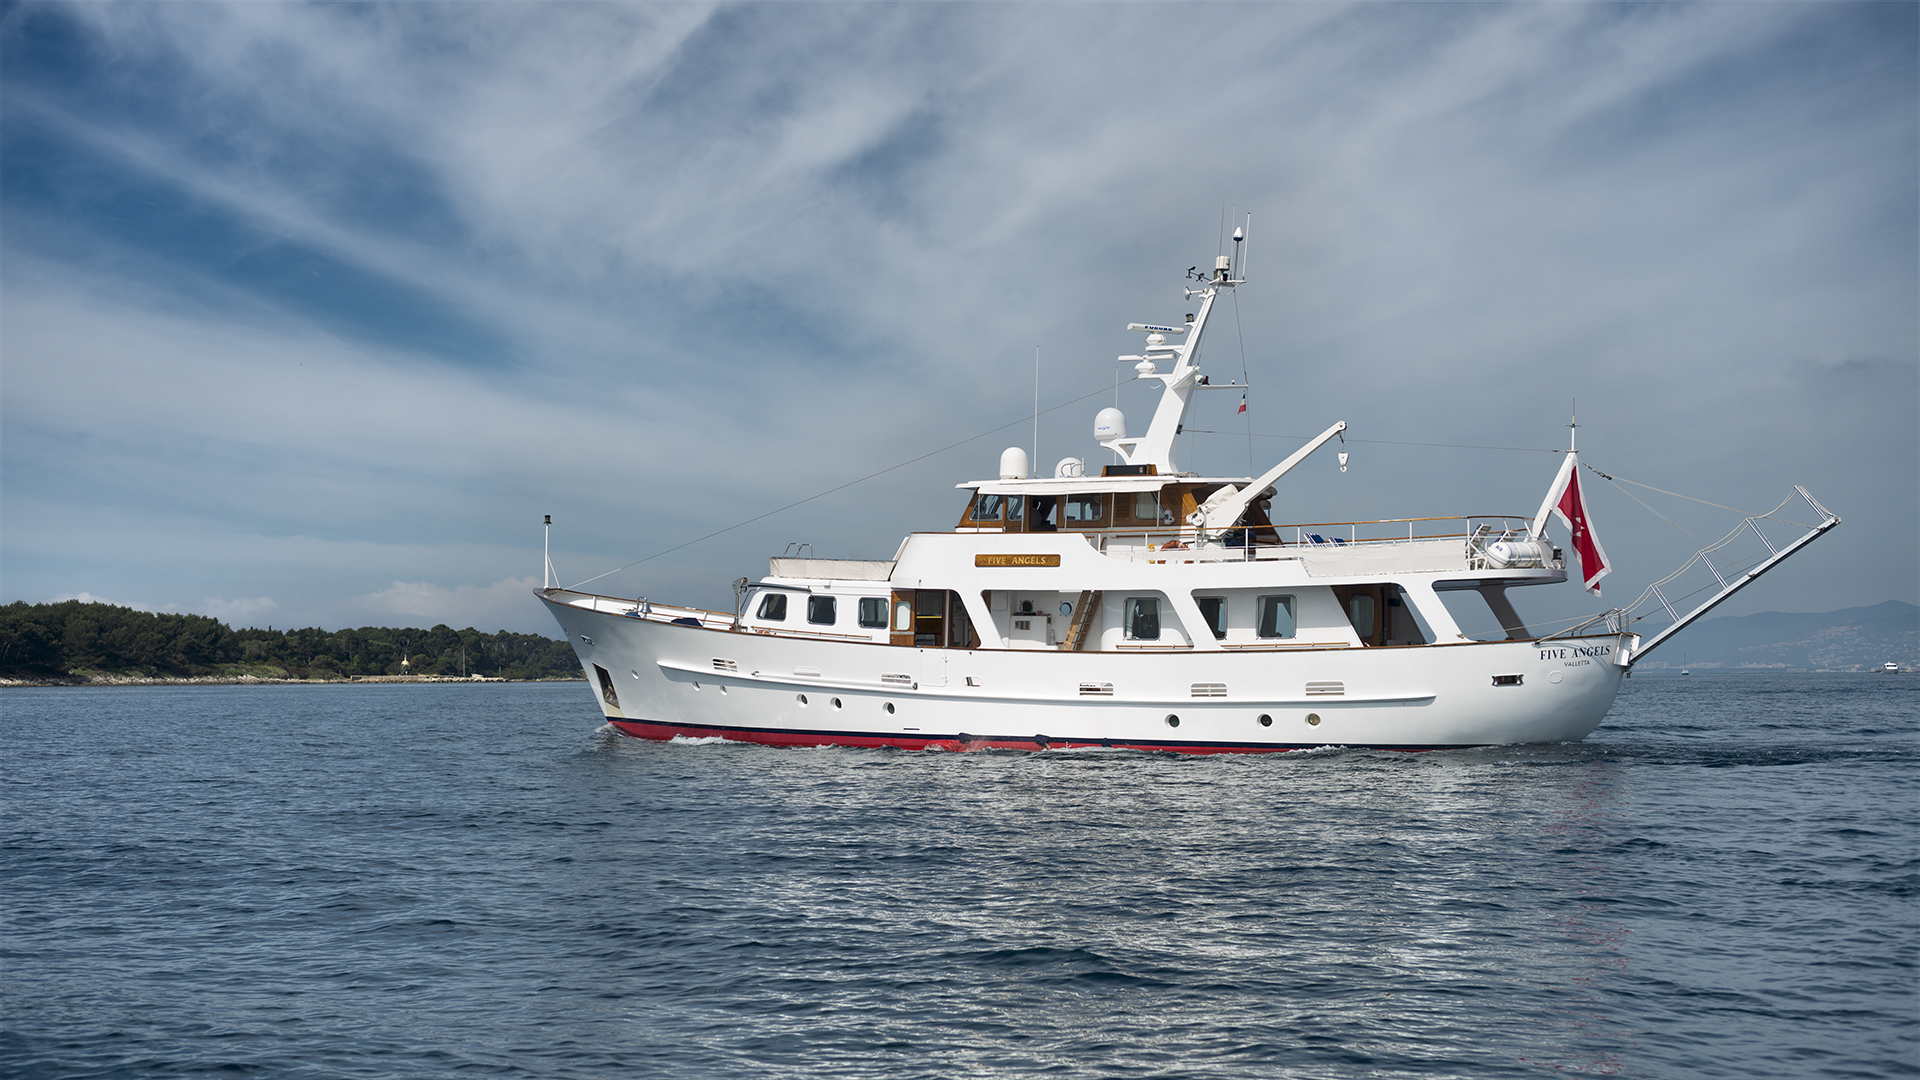 Cammenga 85 pacific class van der vliet quality yachts for Used motor yacht for sale